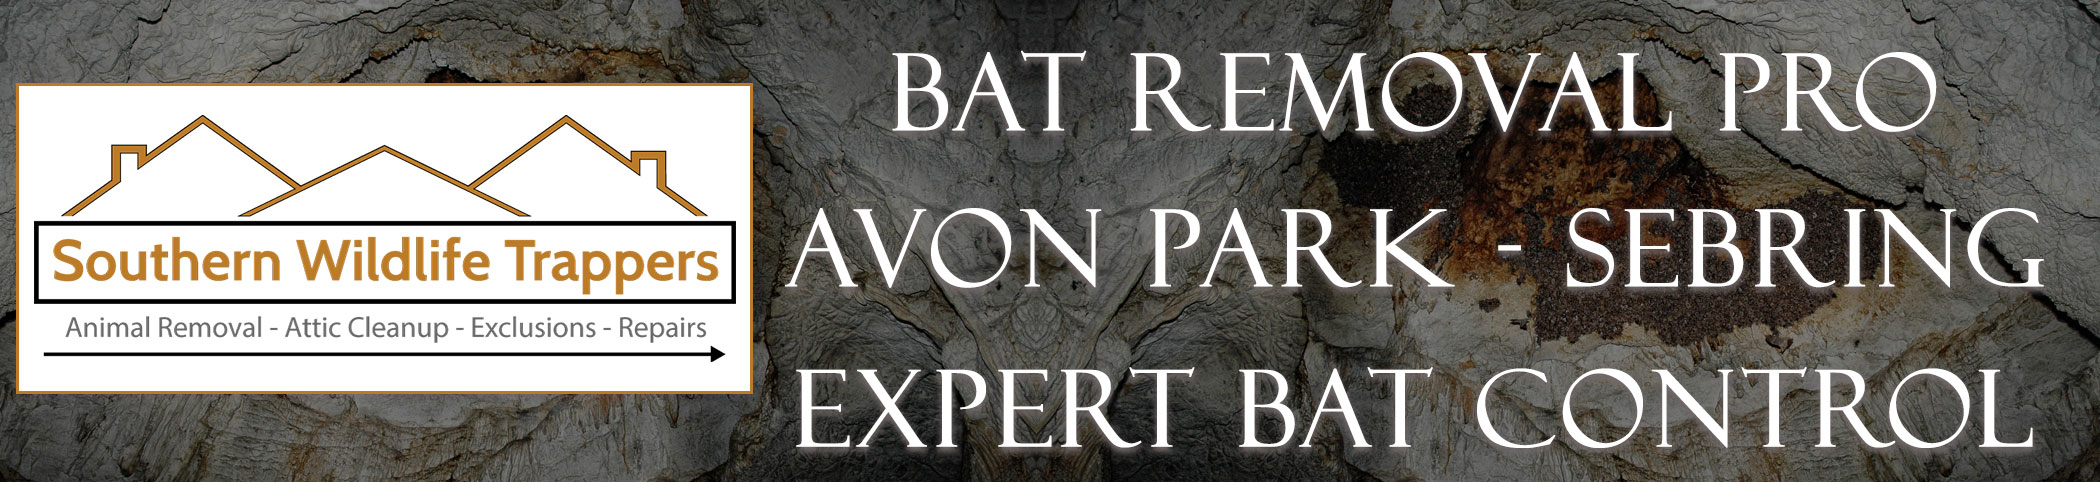 Avon-Park-Sebring-Southern-Wildlife-Trappers